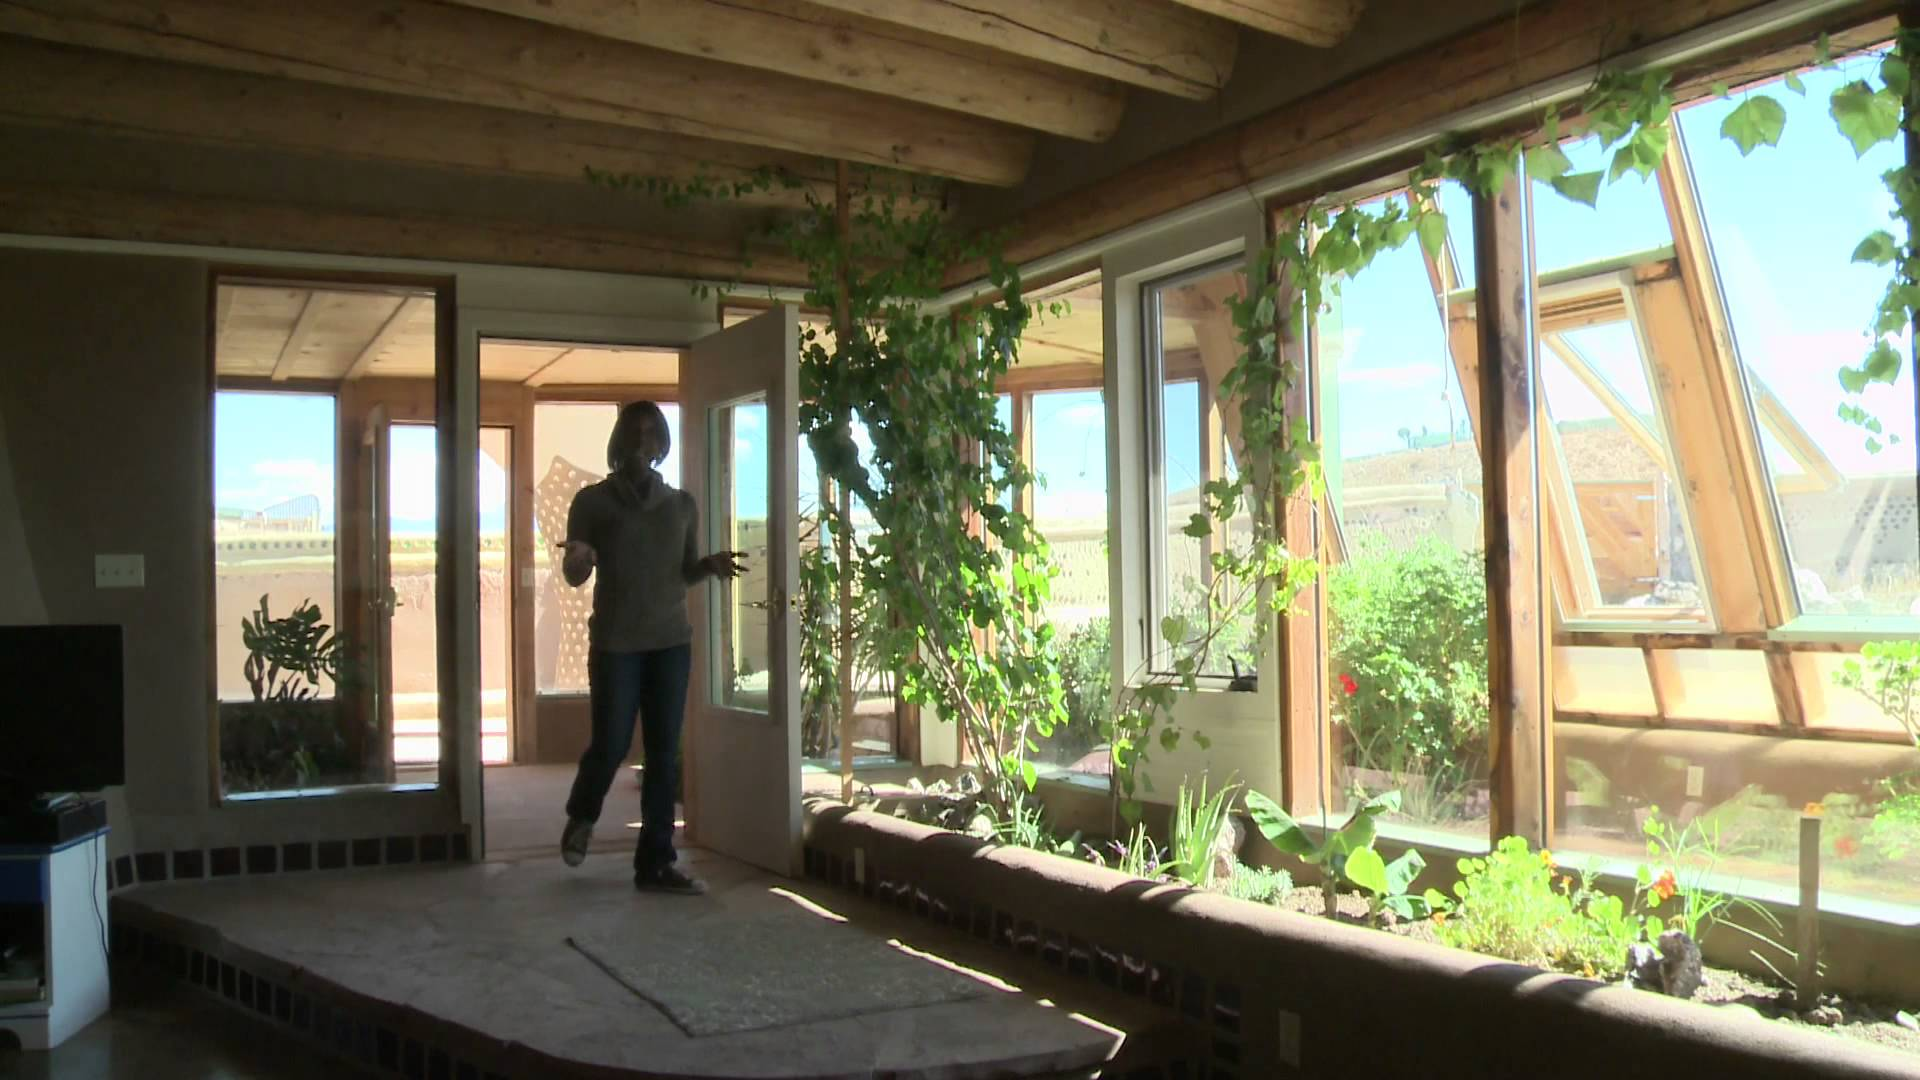 Garbage Homes Earthships Environoego Protect The Planet